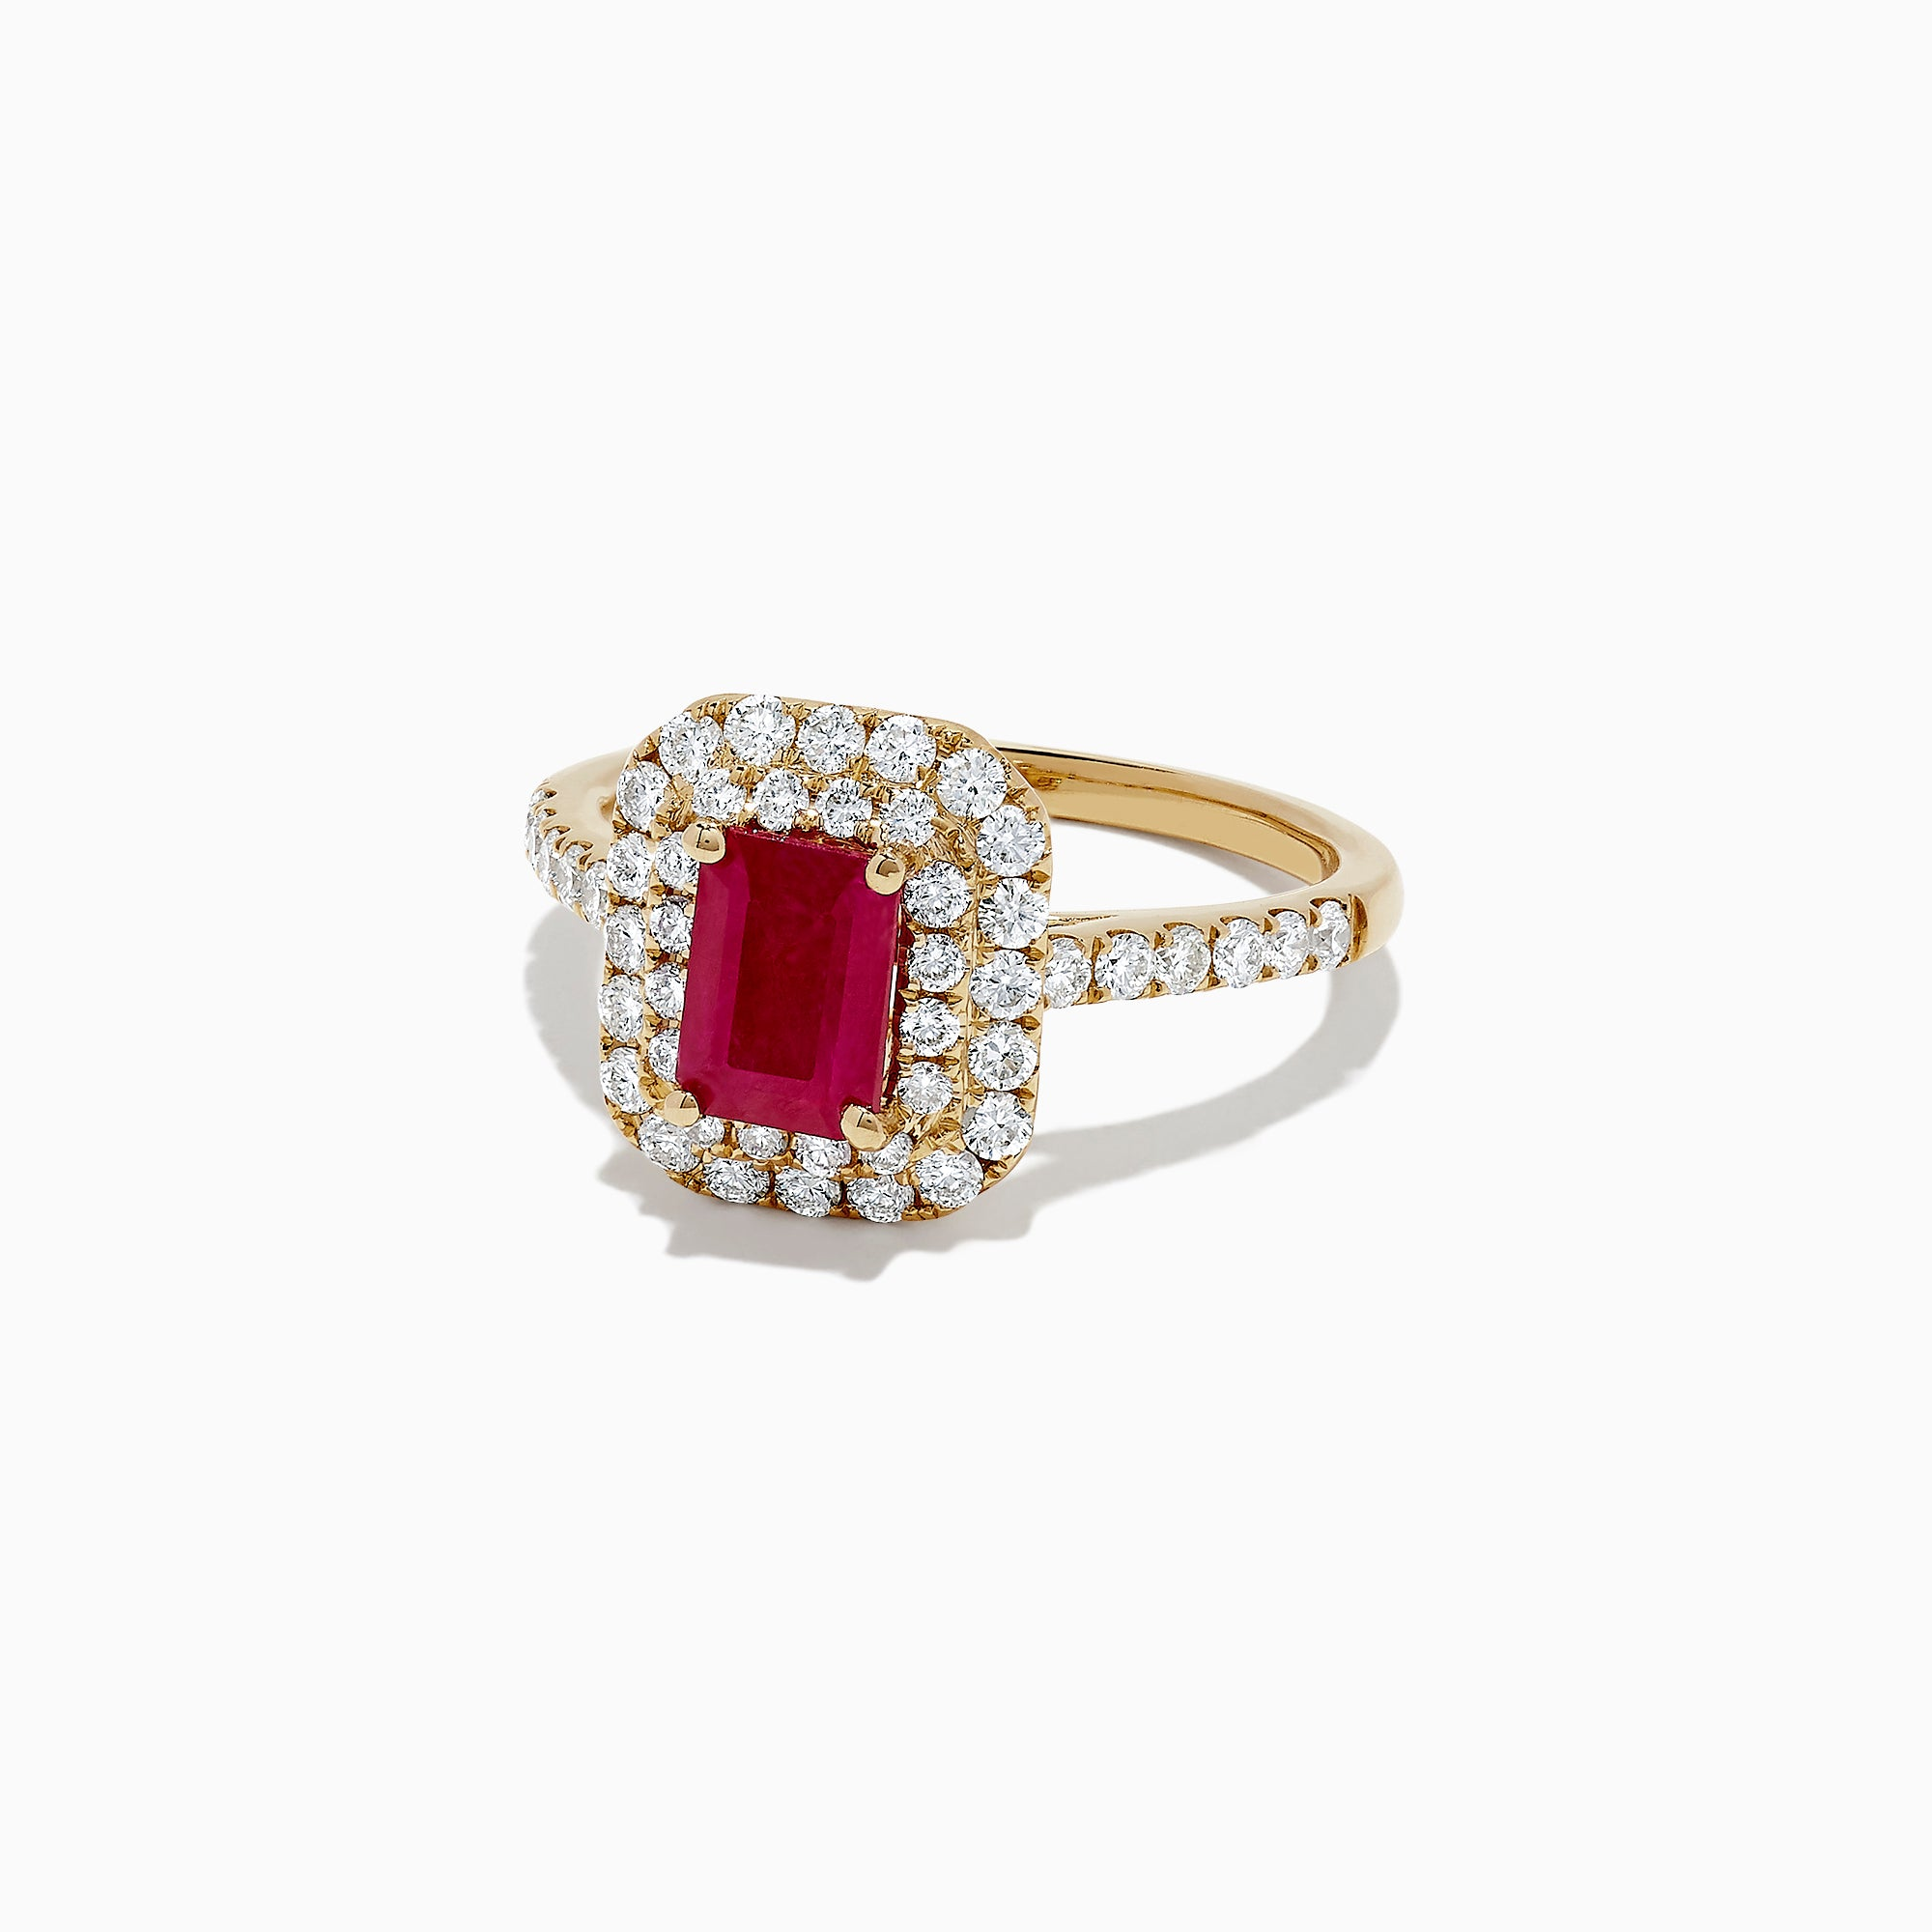 Effy 14K Yellow Gold Ruby and Diamond Ring, 1.74 TCW